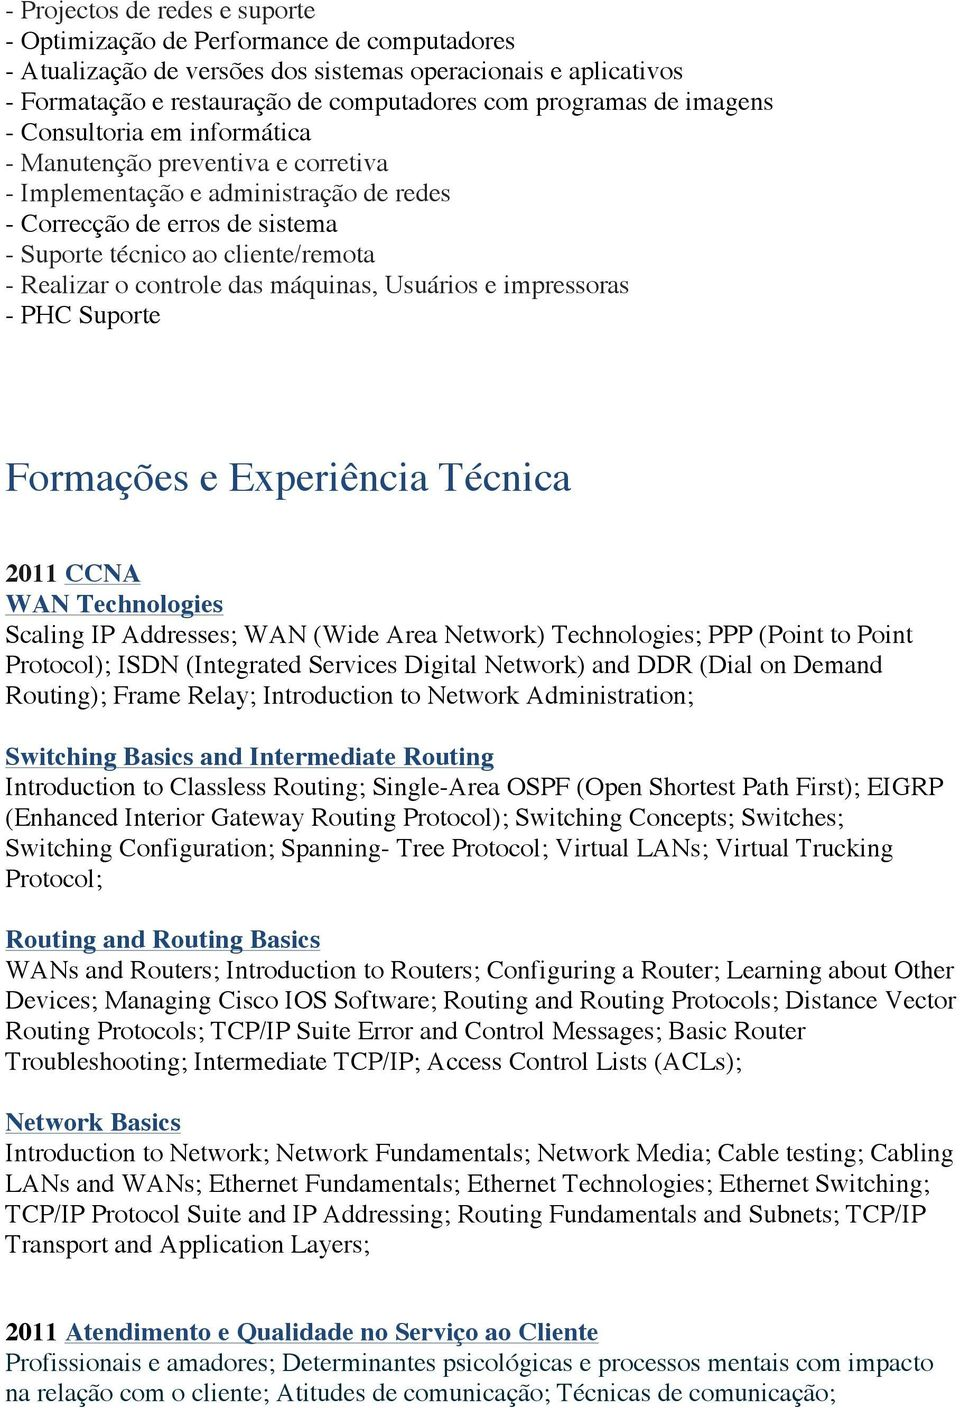 Formações e Experiência Técnica 2011 CCNA WAN Technologies Scaling IP Addresses; WAN (Wide Area Network) Technologies; PPP (Point to Point Protocol); ISDN (Integrated Services Digital Network) and